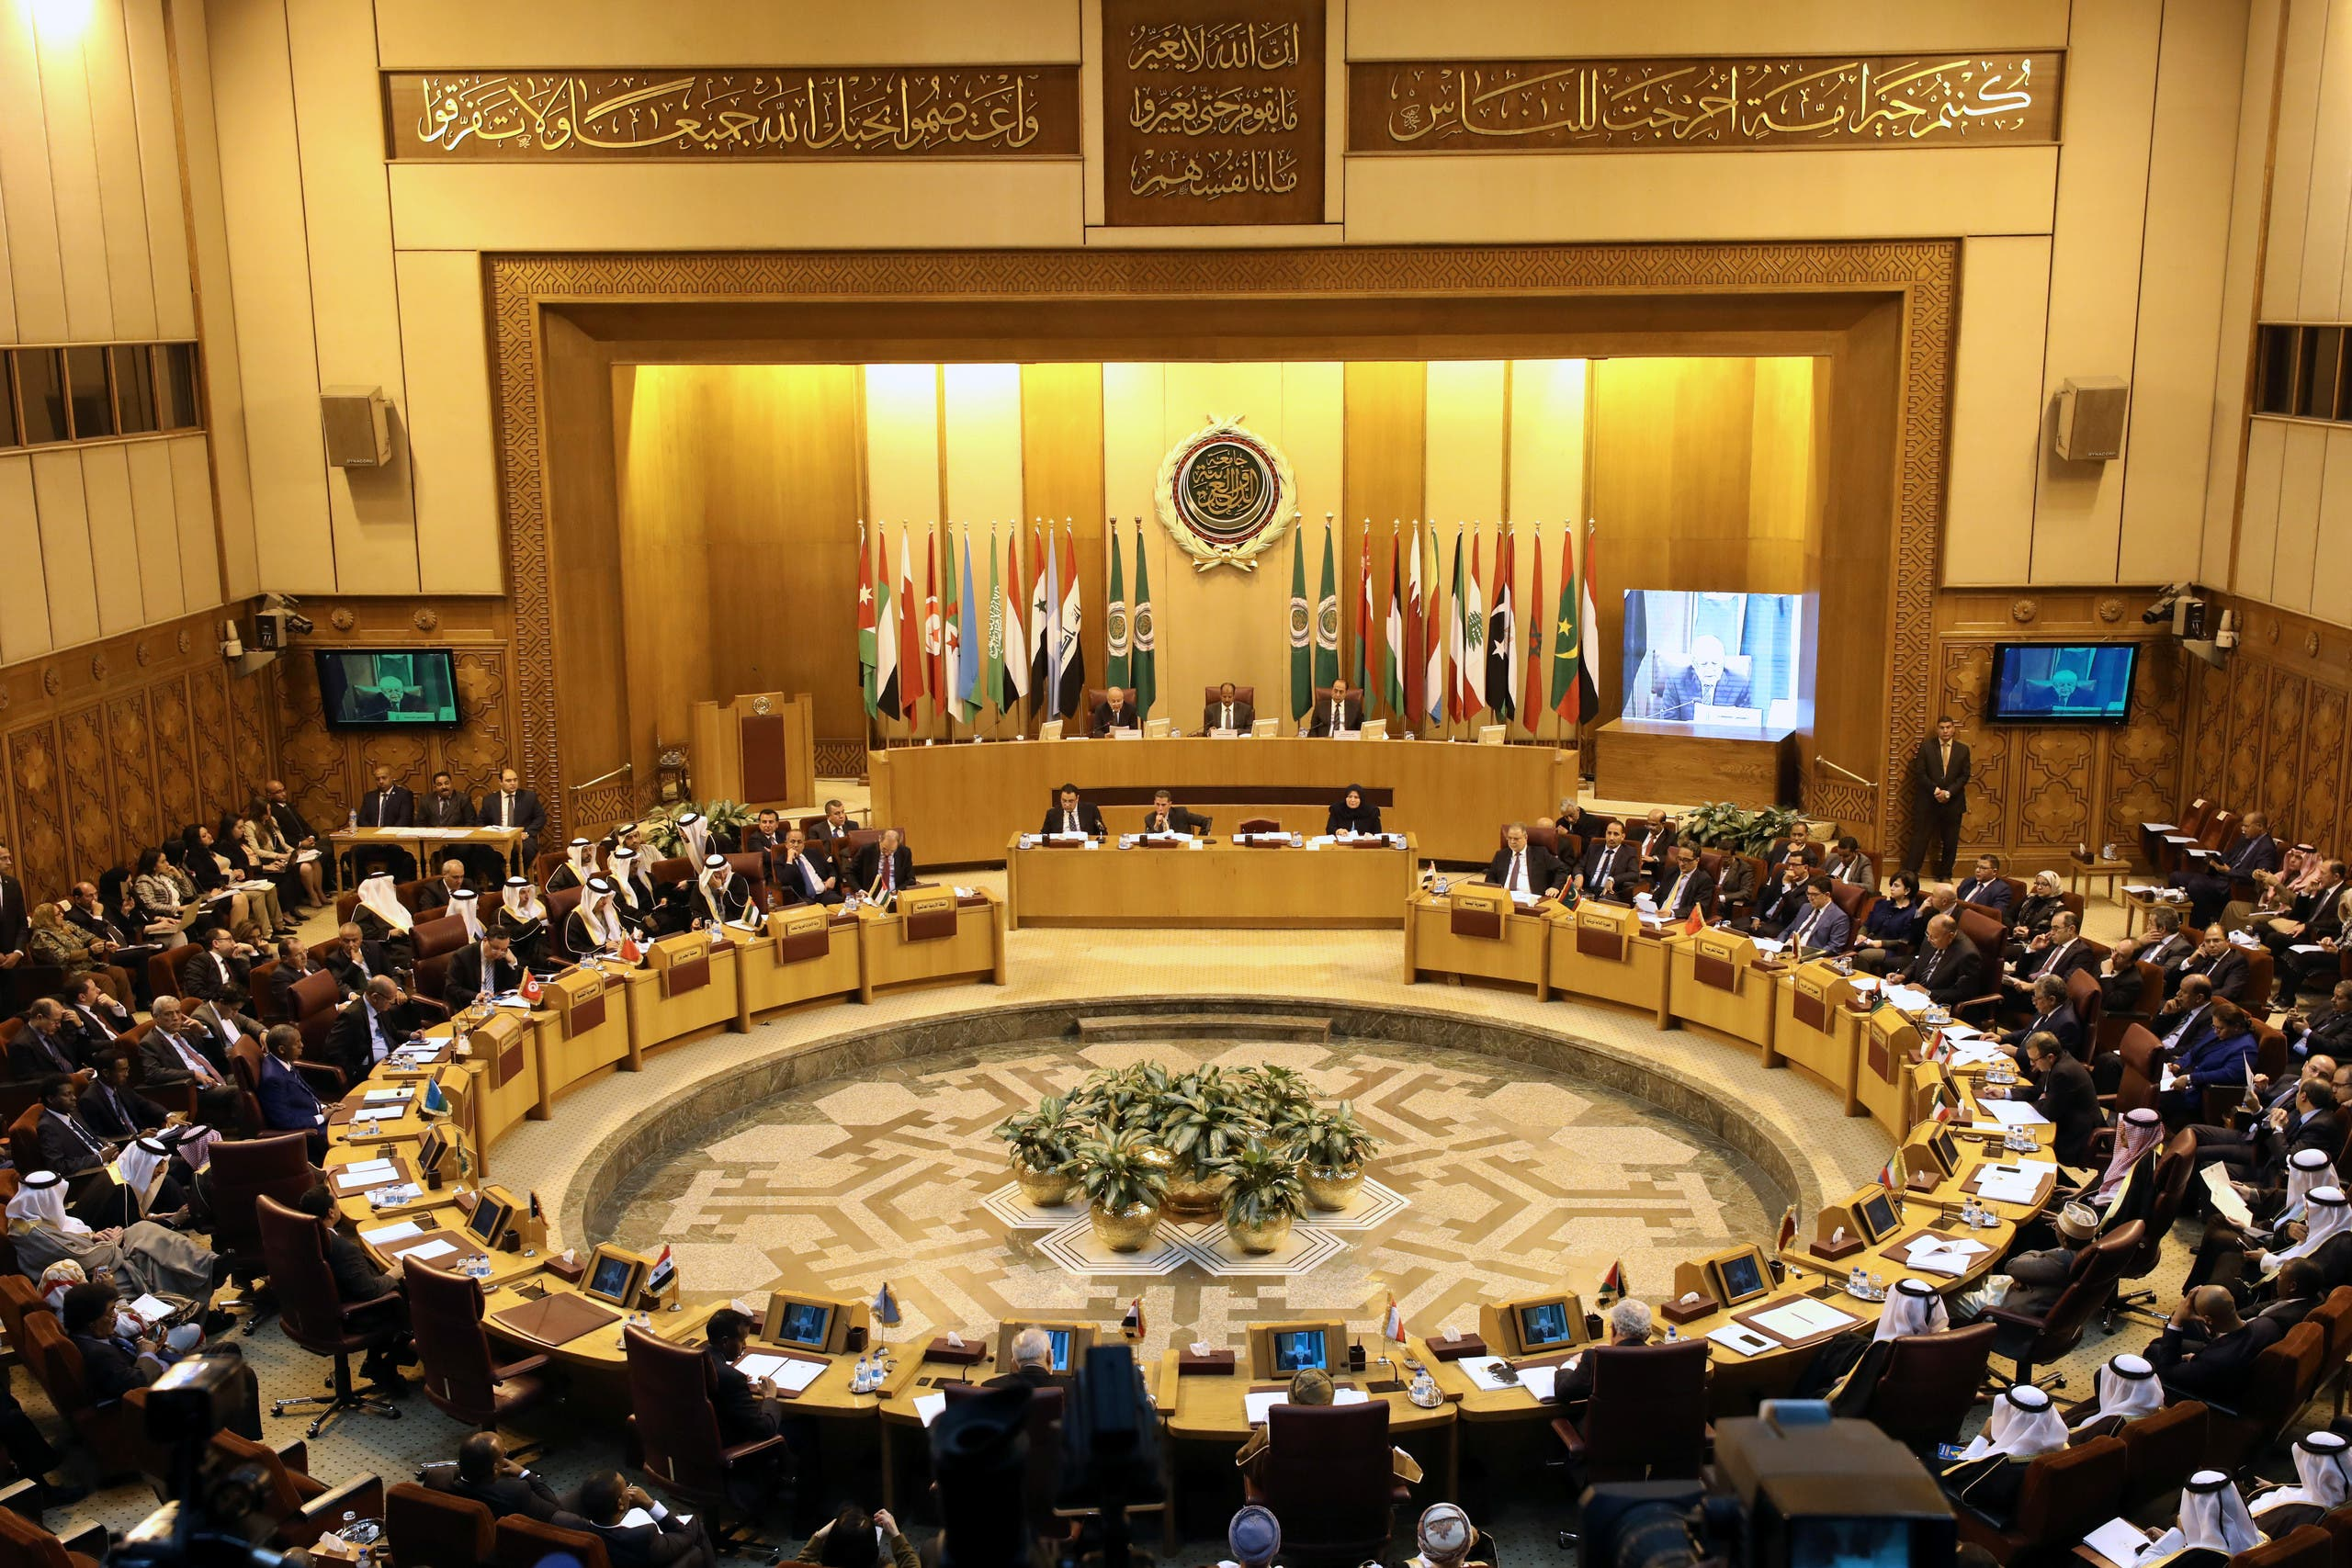 Arab League foreign ministers hold an emergency meeting on US President Trump's decision to recognize Jerusalem as the capital of Israel, in Cairo, Egypt on December 9, 2017. (Reuters)